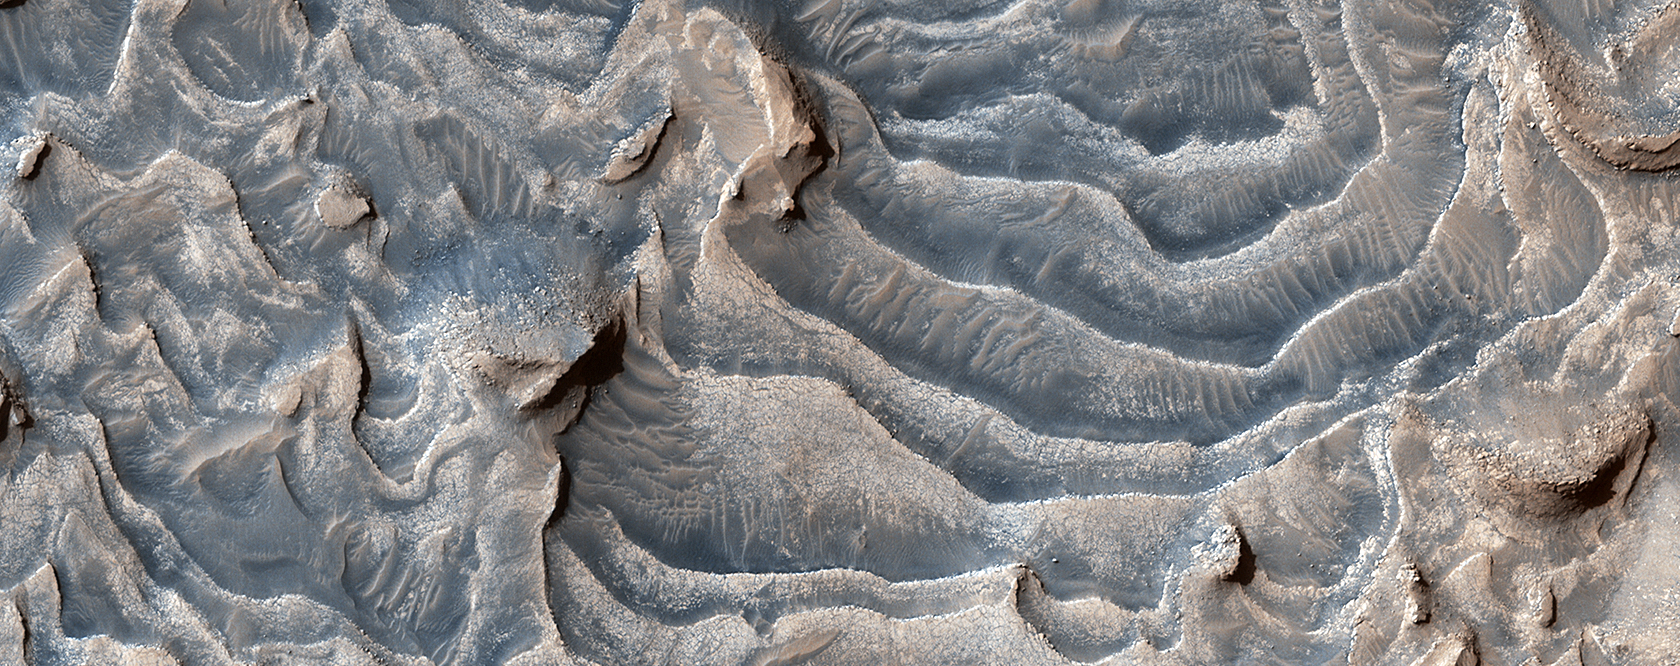 Layers Blanket a Crater Floor